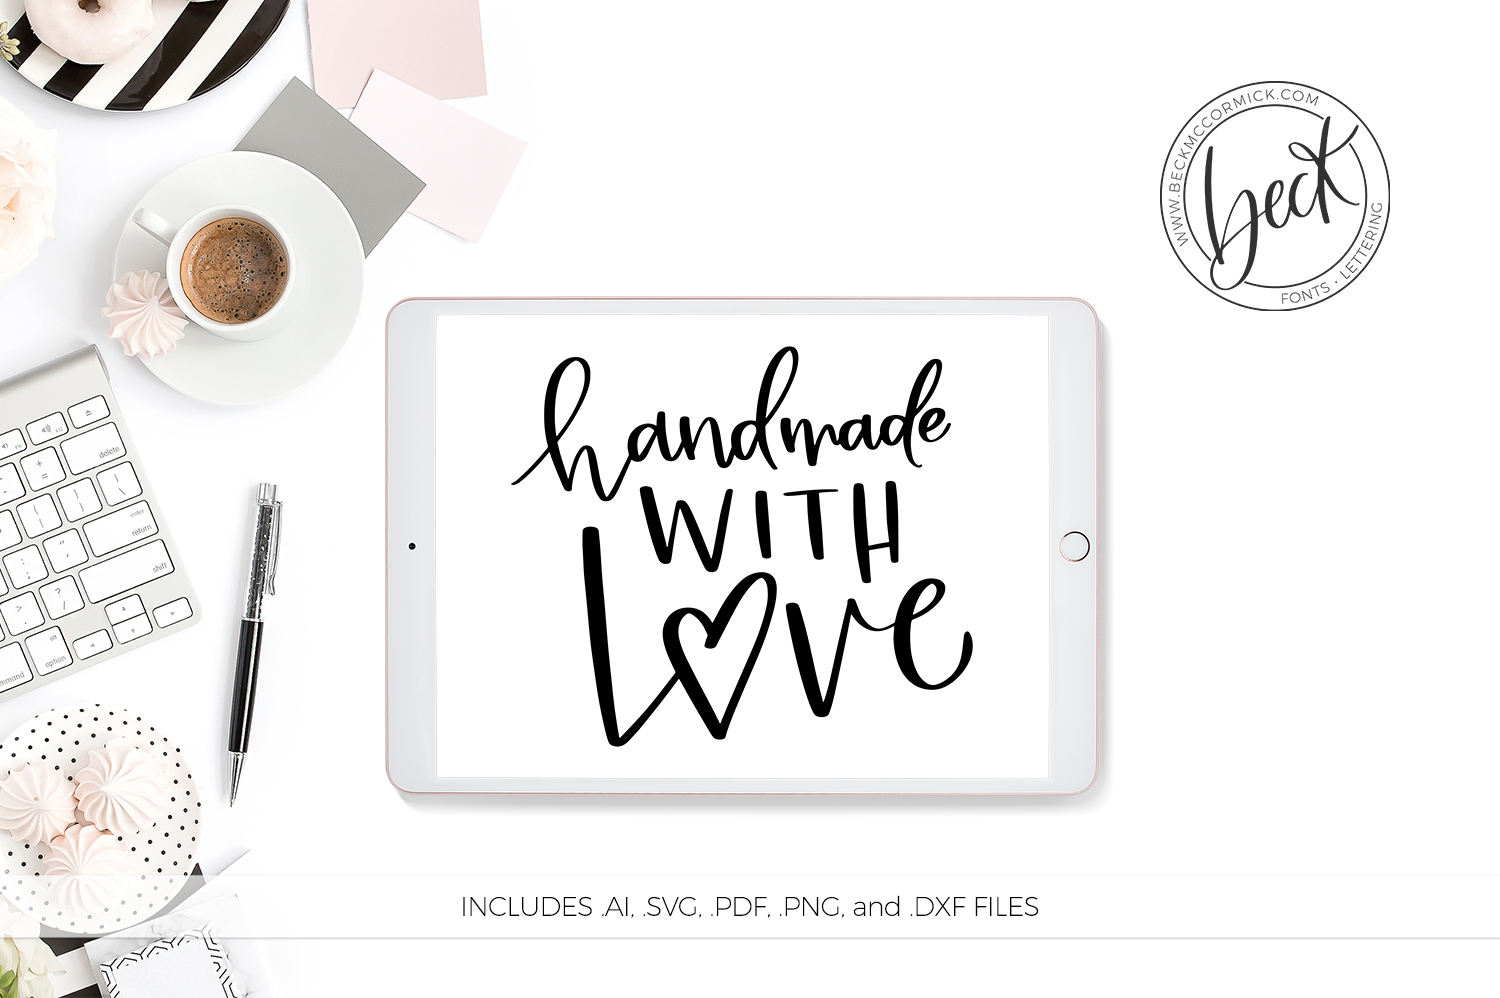 Download Free Handmade With Love Graphic By Beckmccormick Creative Fabrica for Cricut Explore, Silhouette and other cutting machines.